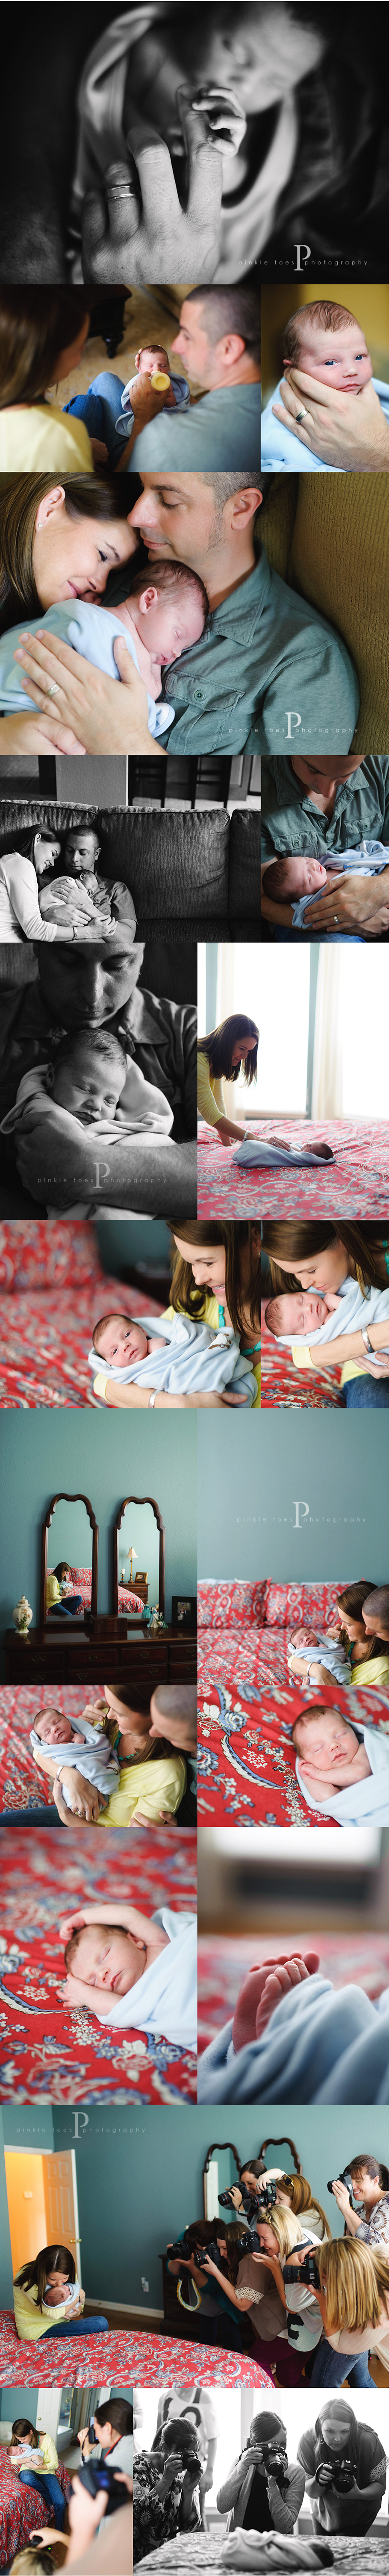 o-austin-newborn-lifestyle-photography-workshop.jpg